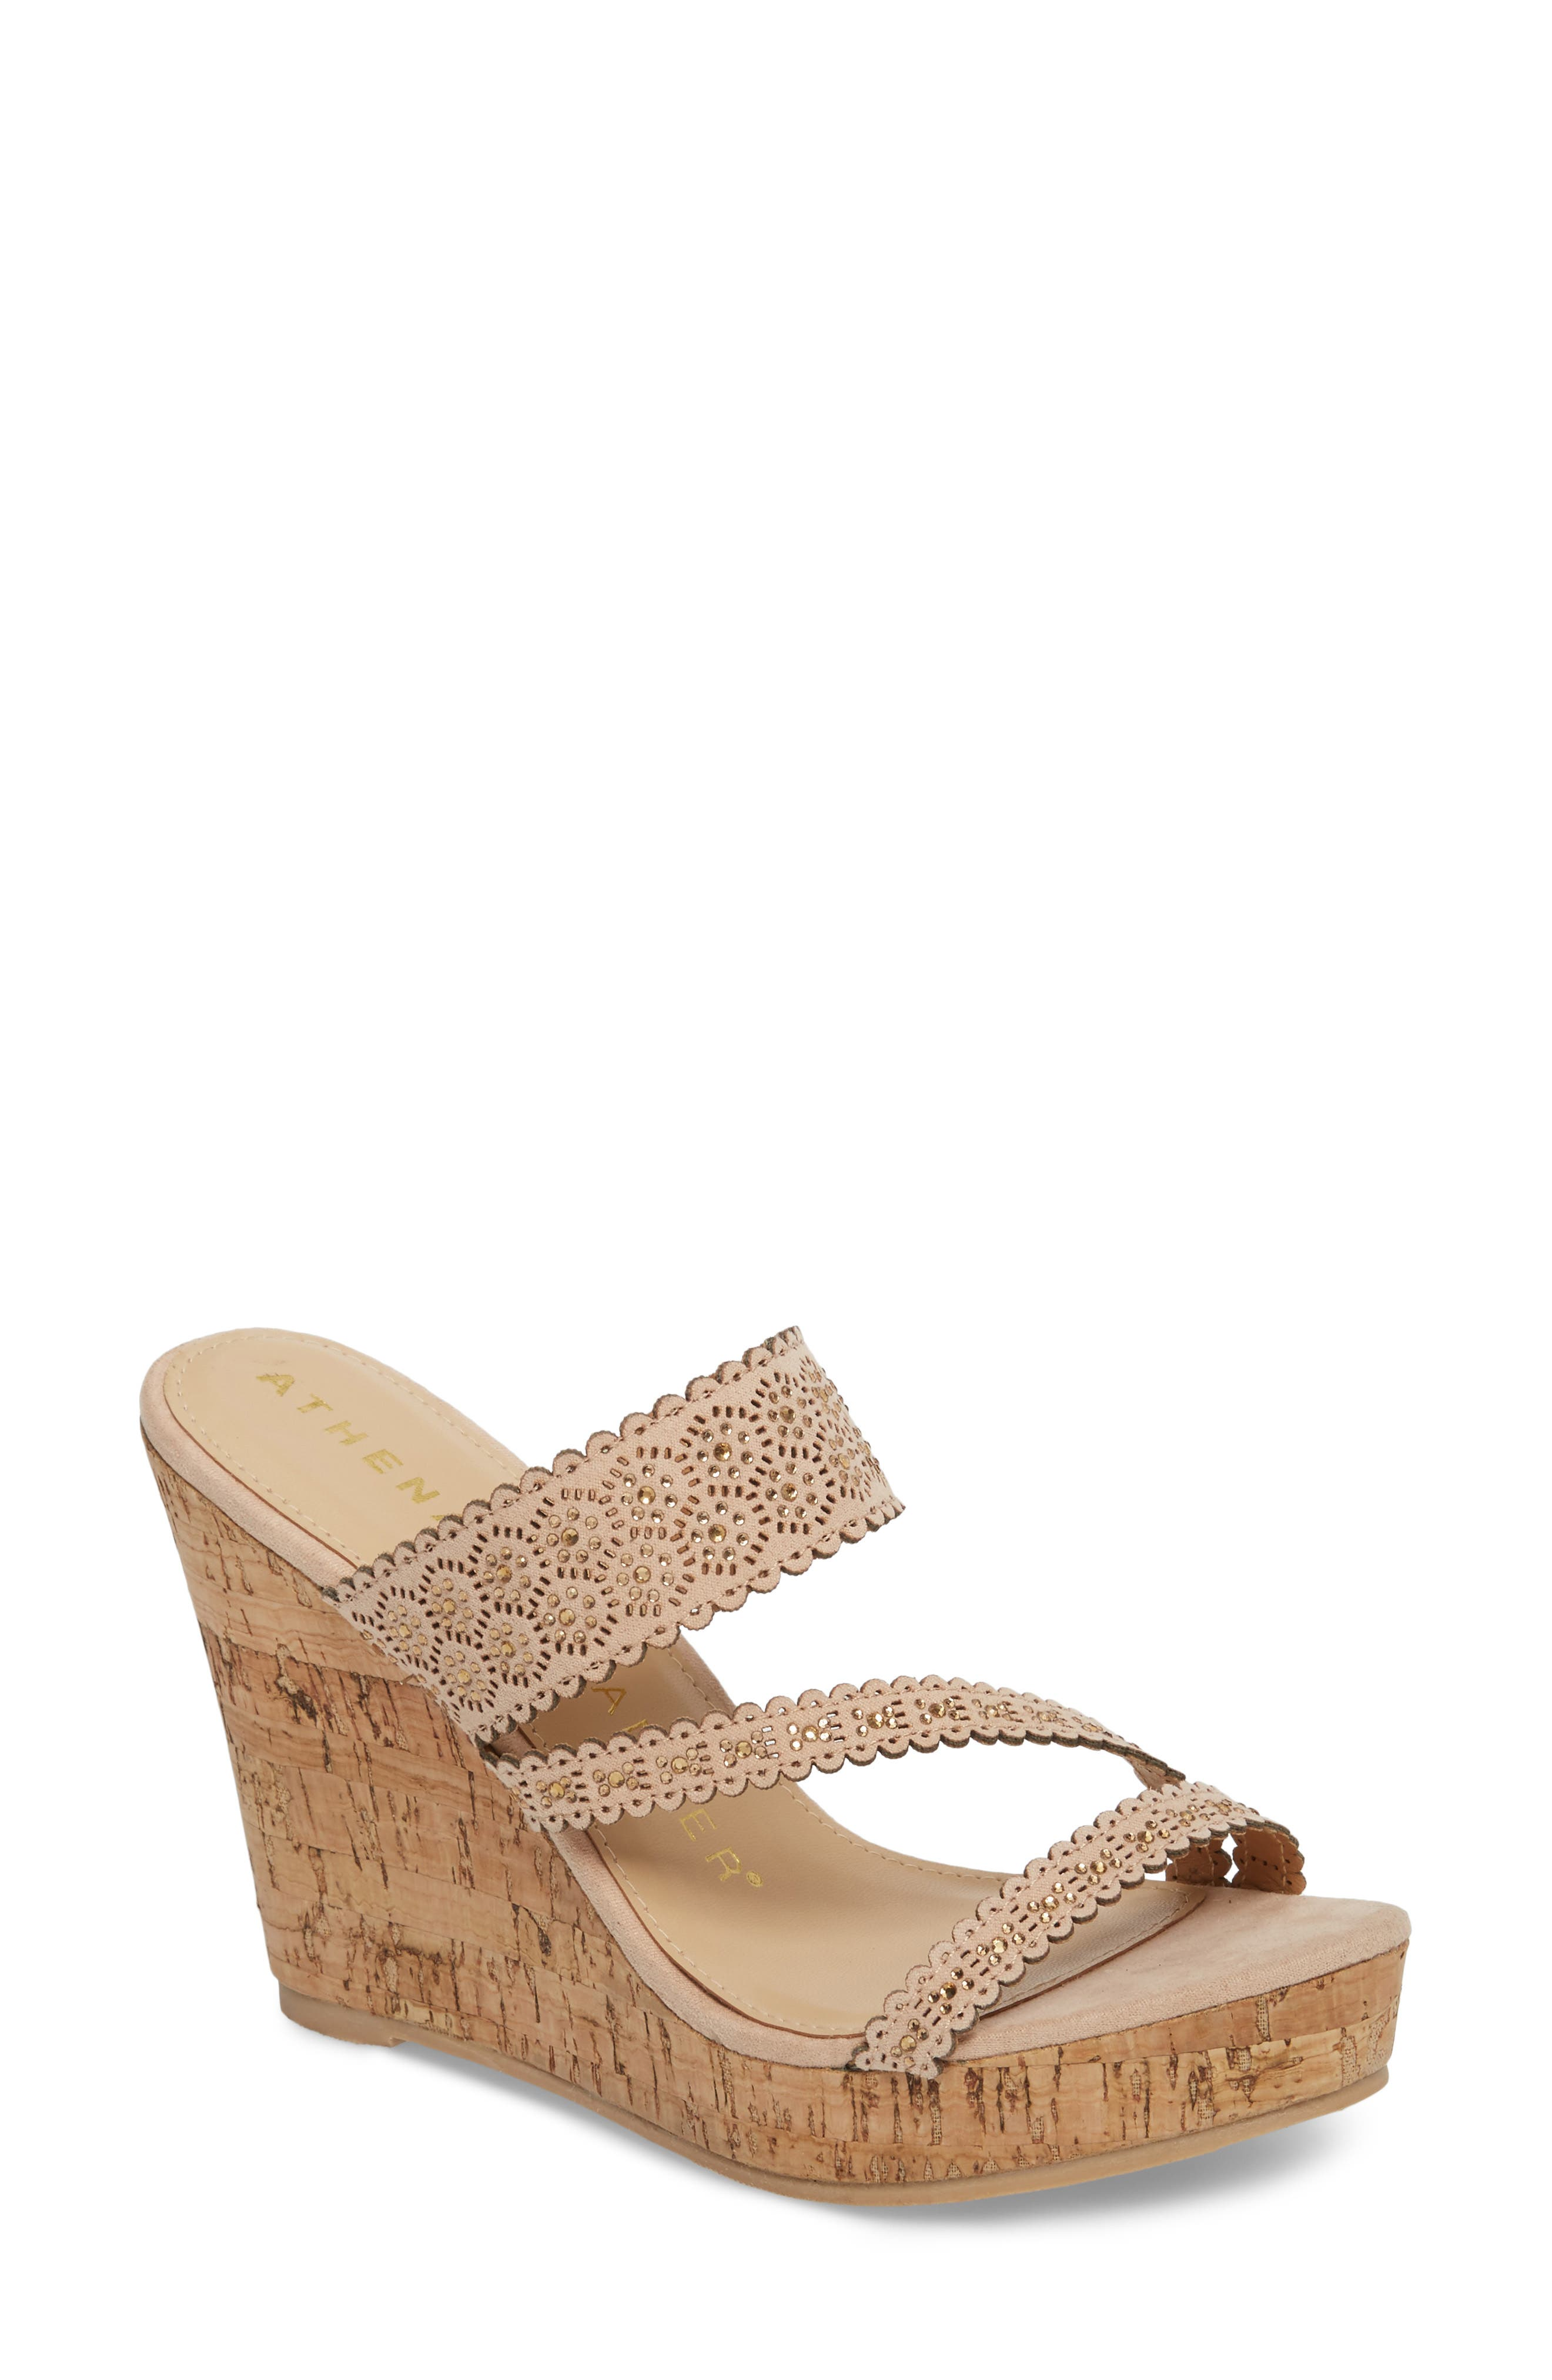 Aerin Embellished Wedge Sandal,                             Main thumbnail 1, color,                             BLUSH SUEDE